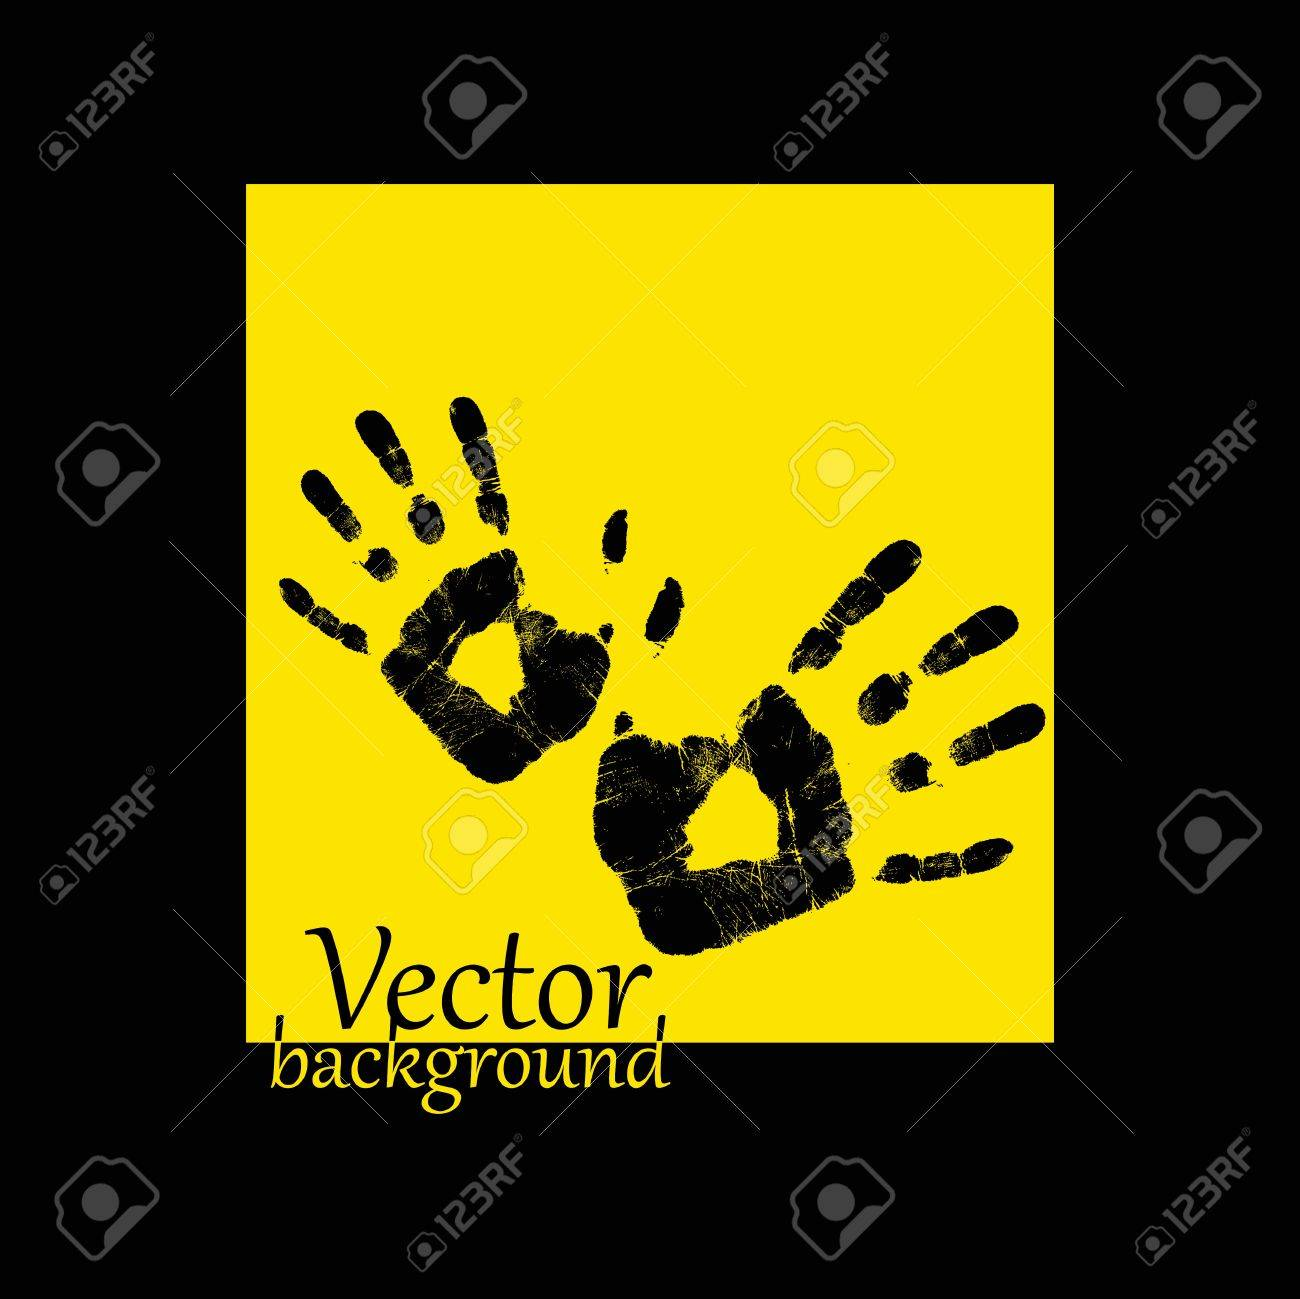 Abstract hand print on a yellow background - vector illustration Stock Vector - 14030823